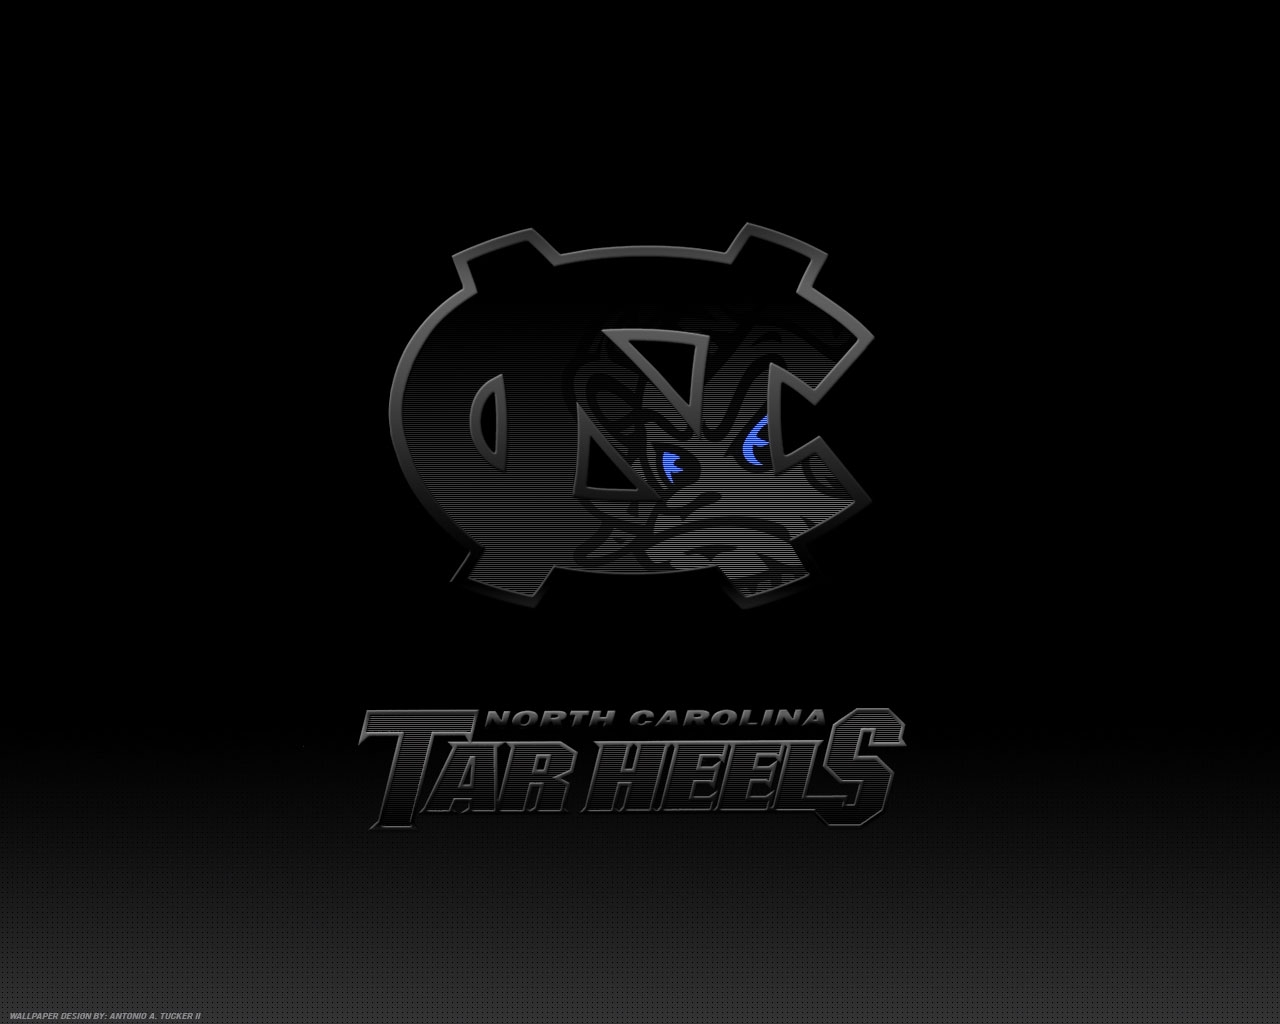 10 New North Carolina Tar Heels Logo Wallpaper FULL HD 1920×1080 For PC Desktop